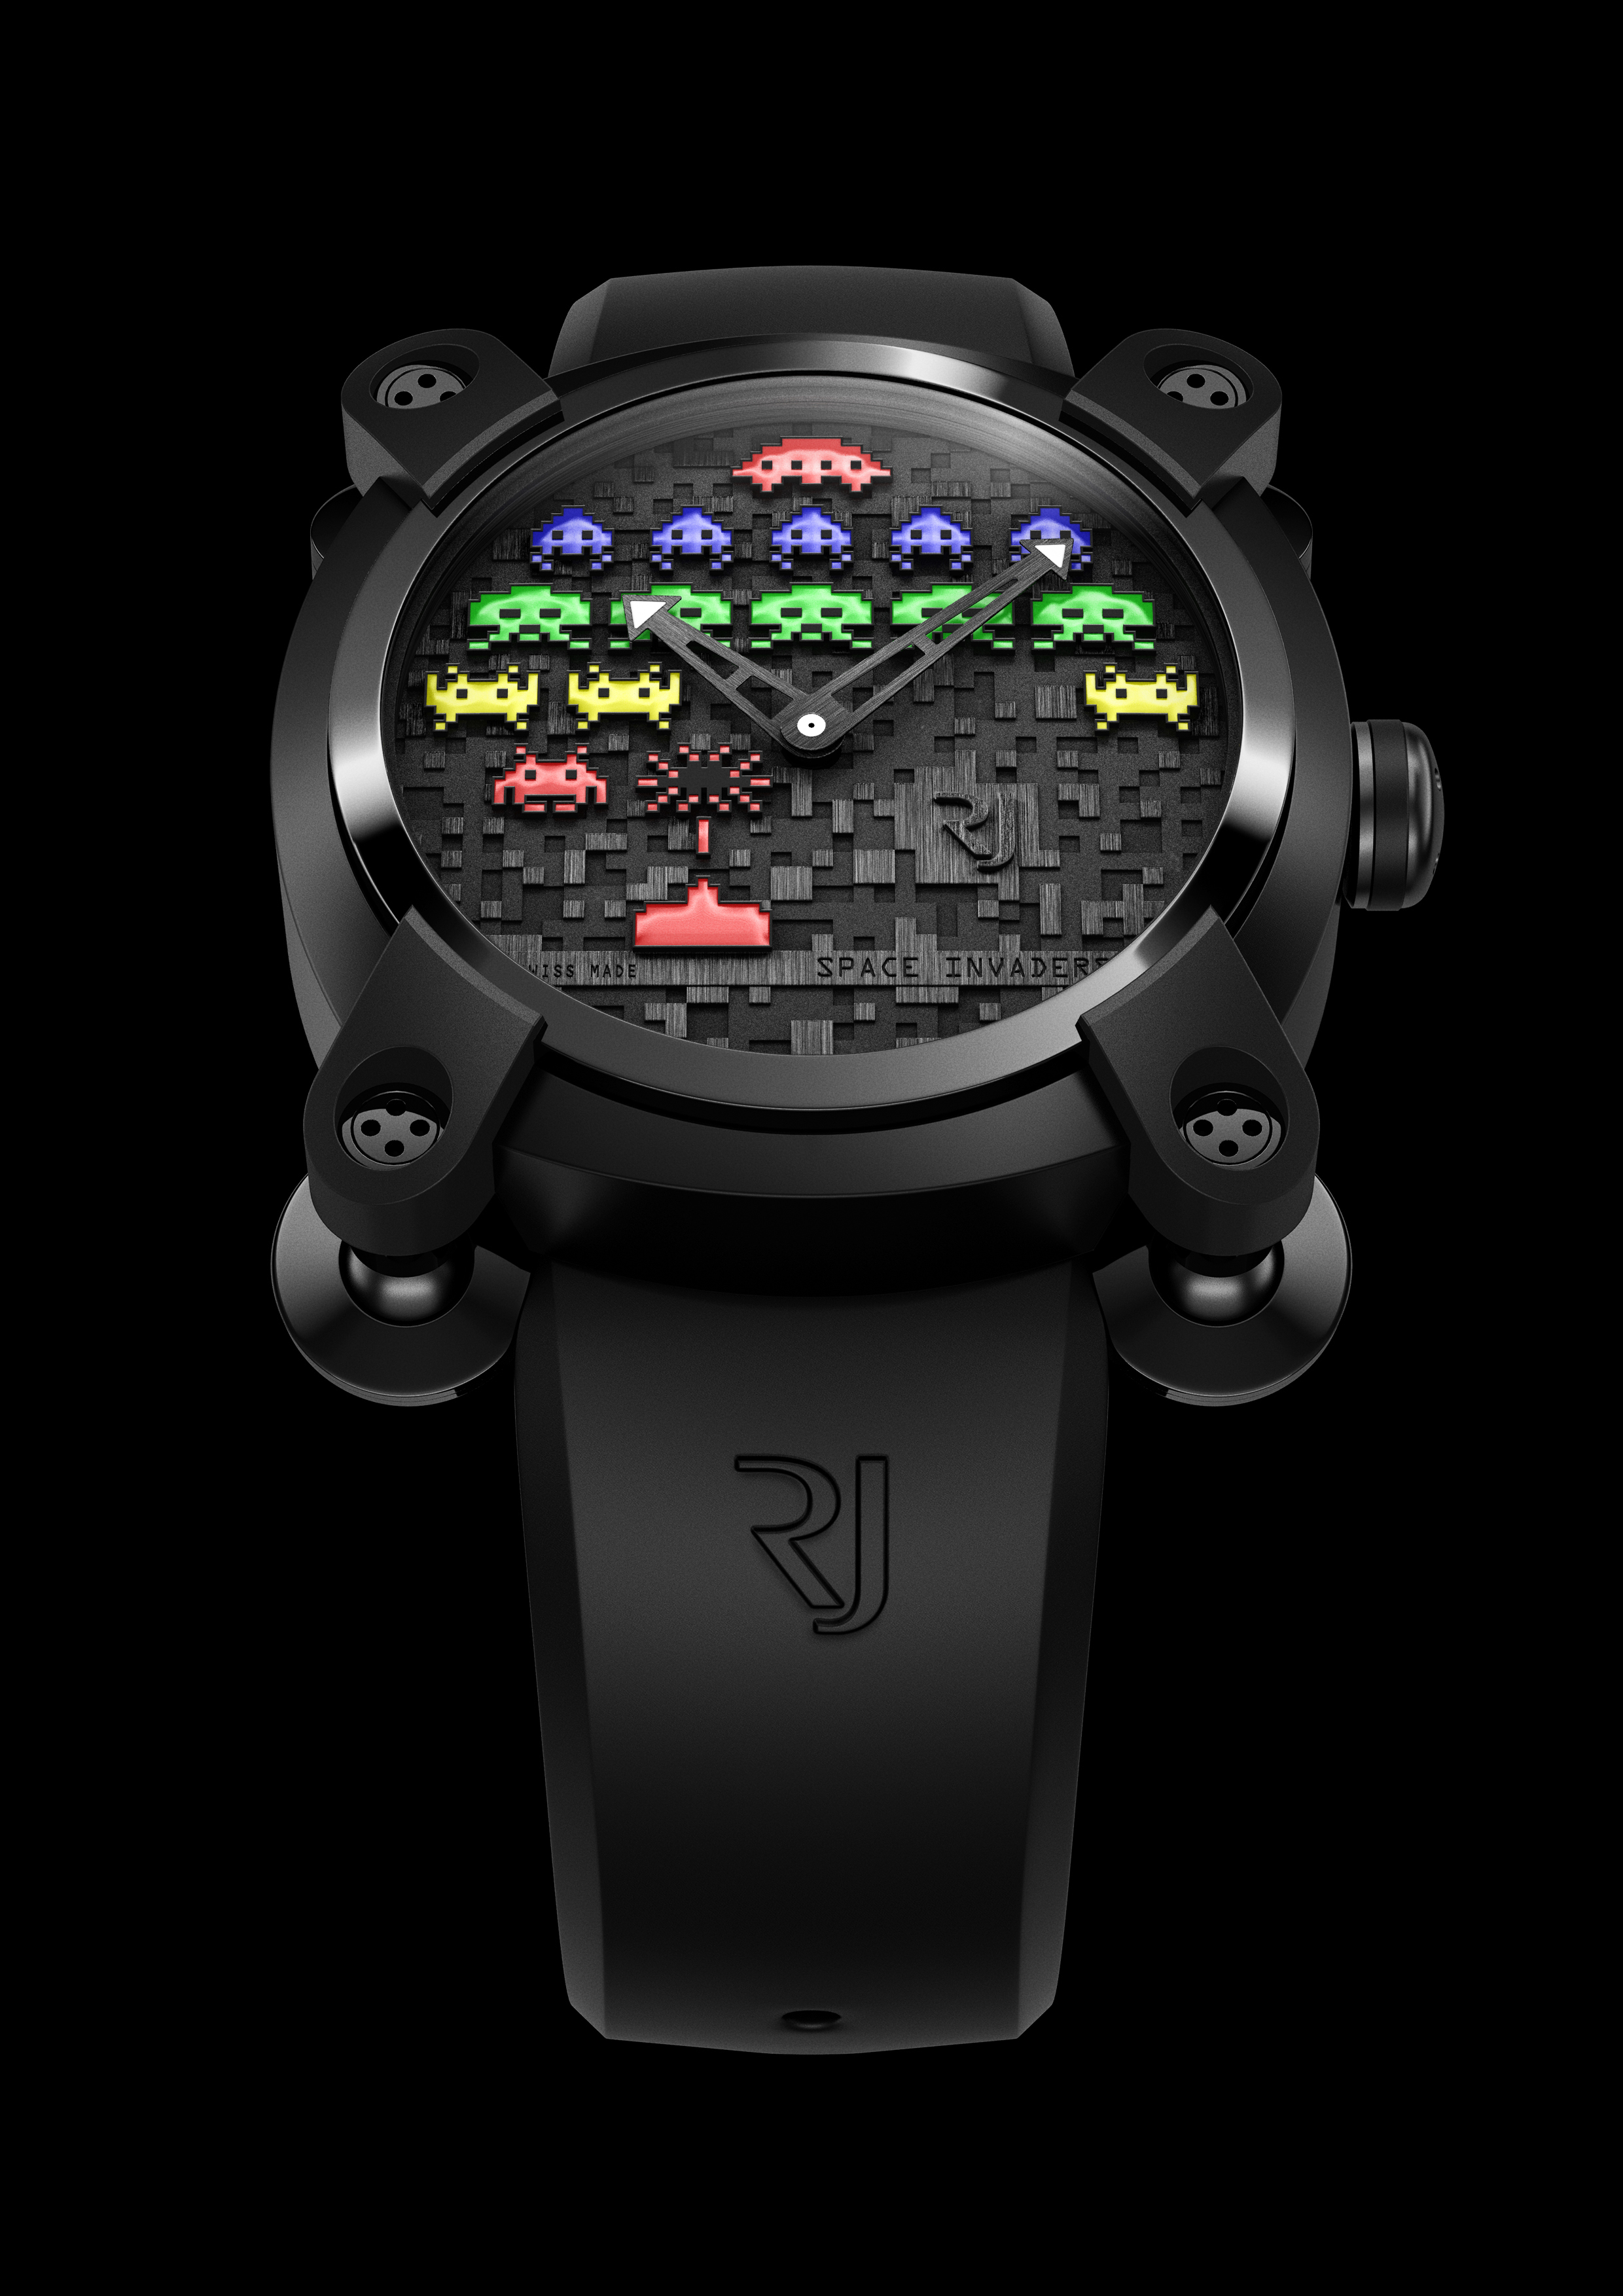 Space Invaders watches HD Wallpaper